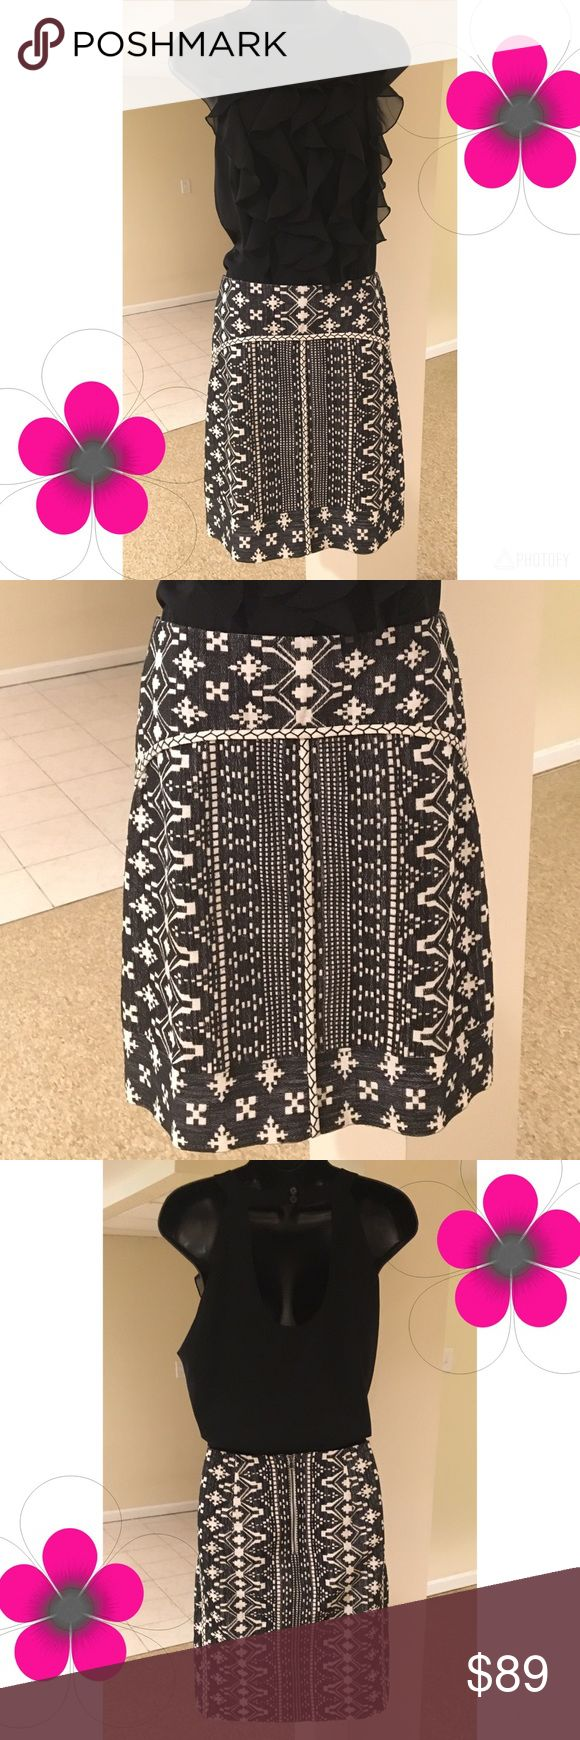 Kobi Halperin pencil skirt Designer skirt by Kobi Halperin (Designer selling at Neiman Marcus, Nordstrom's, Sak's). Patrice Linen Blend model. This particular skirt retailed at Nordstrom's for $398! Amazing construction, flattering fit with a feminine shape. In like new condition. Measurements: Smoke free home. Bundle for additional savings. Offers welcome! Kobi Halperin Skirts Pencil